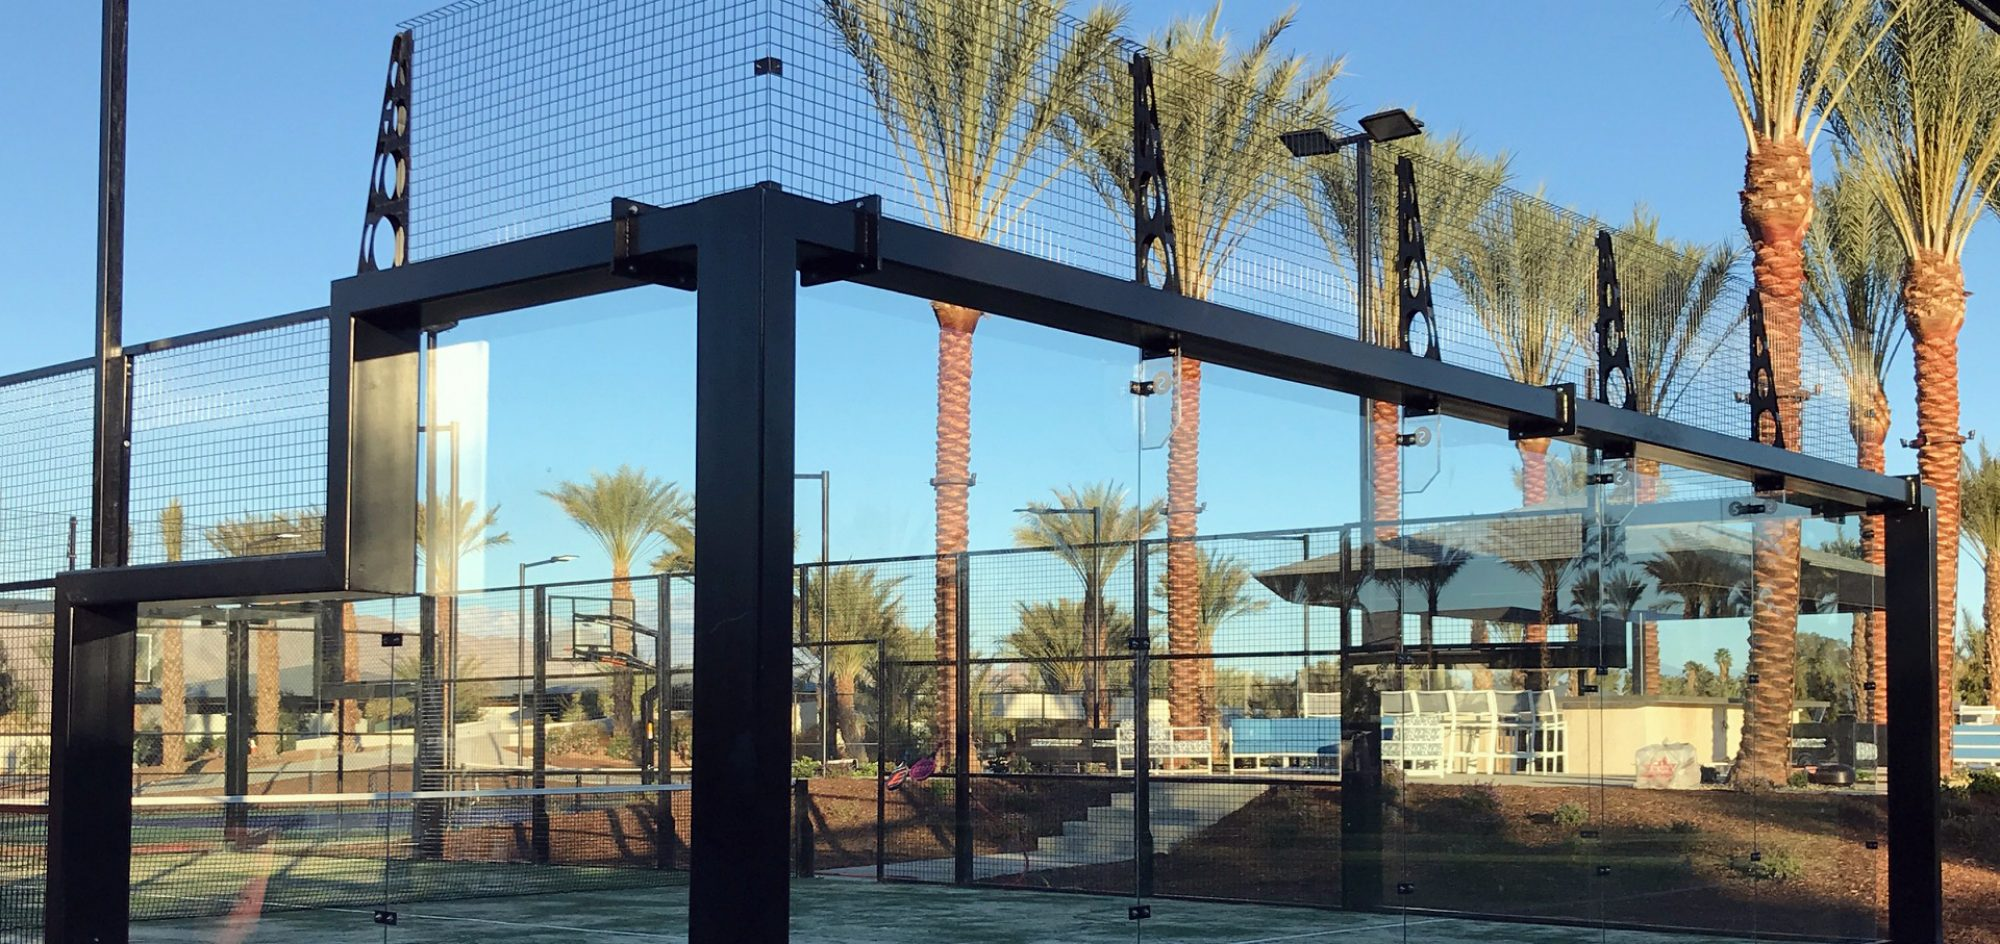 Padel in the USA